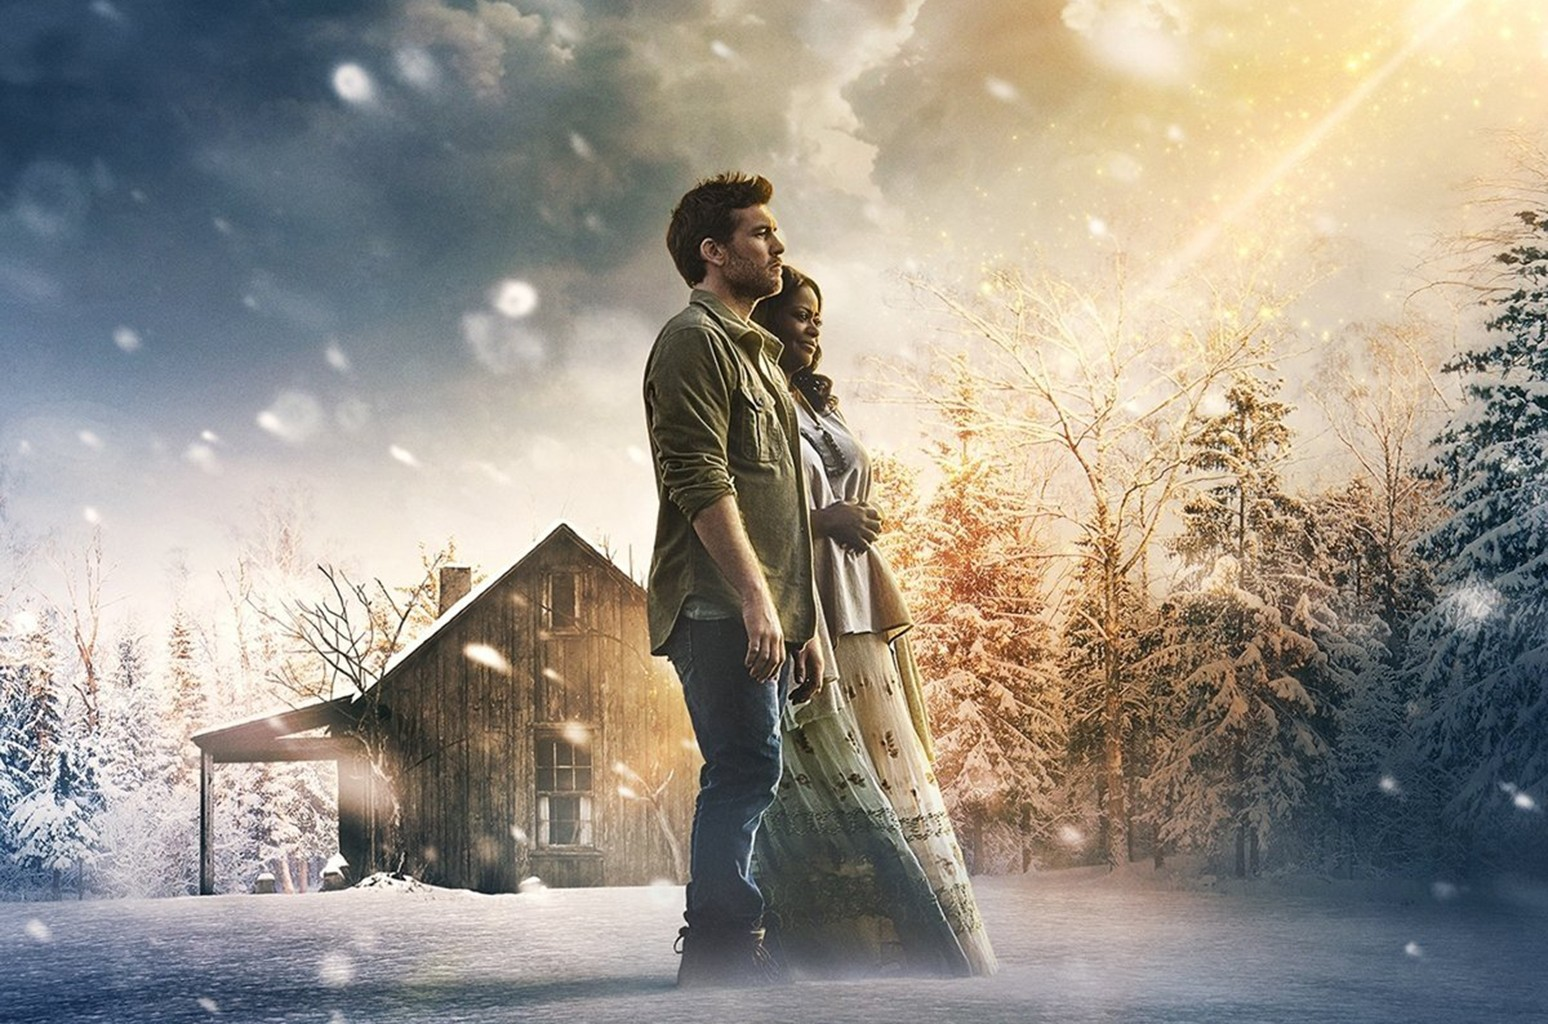 'The Shack' Soundtrack Cover Art